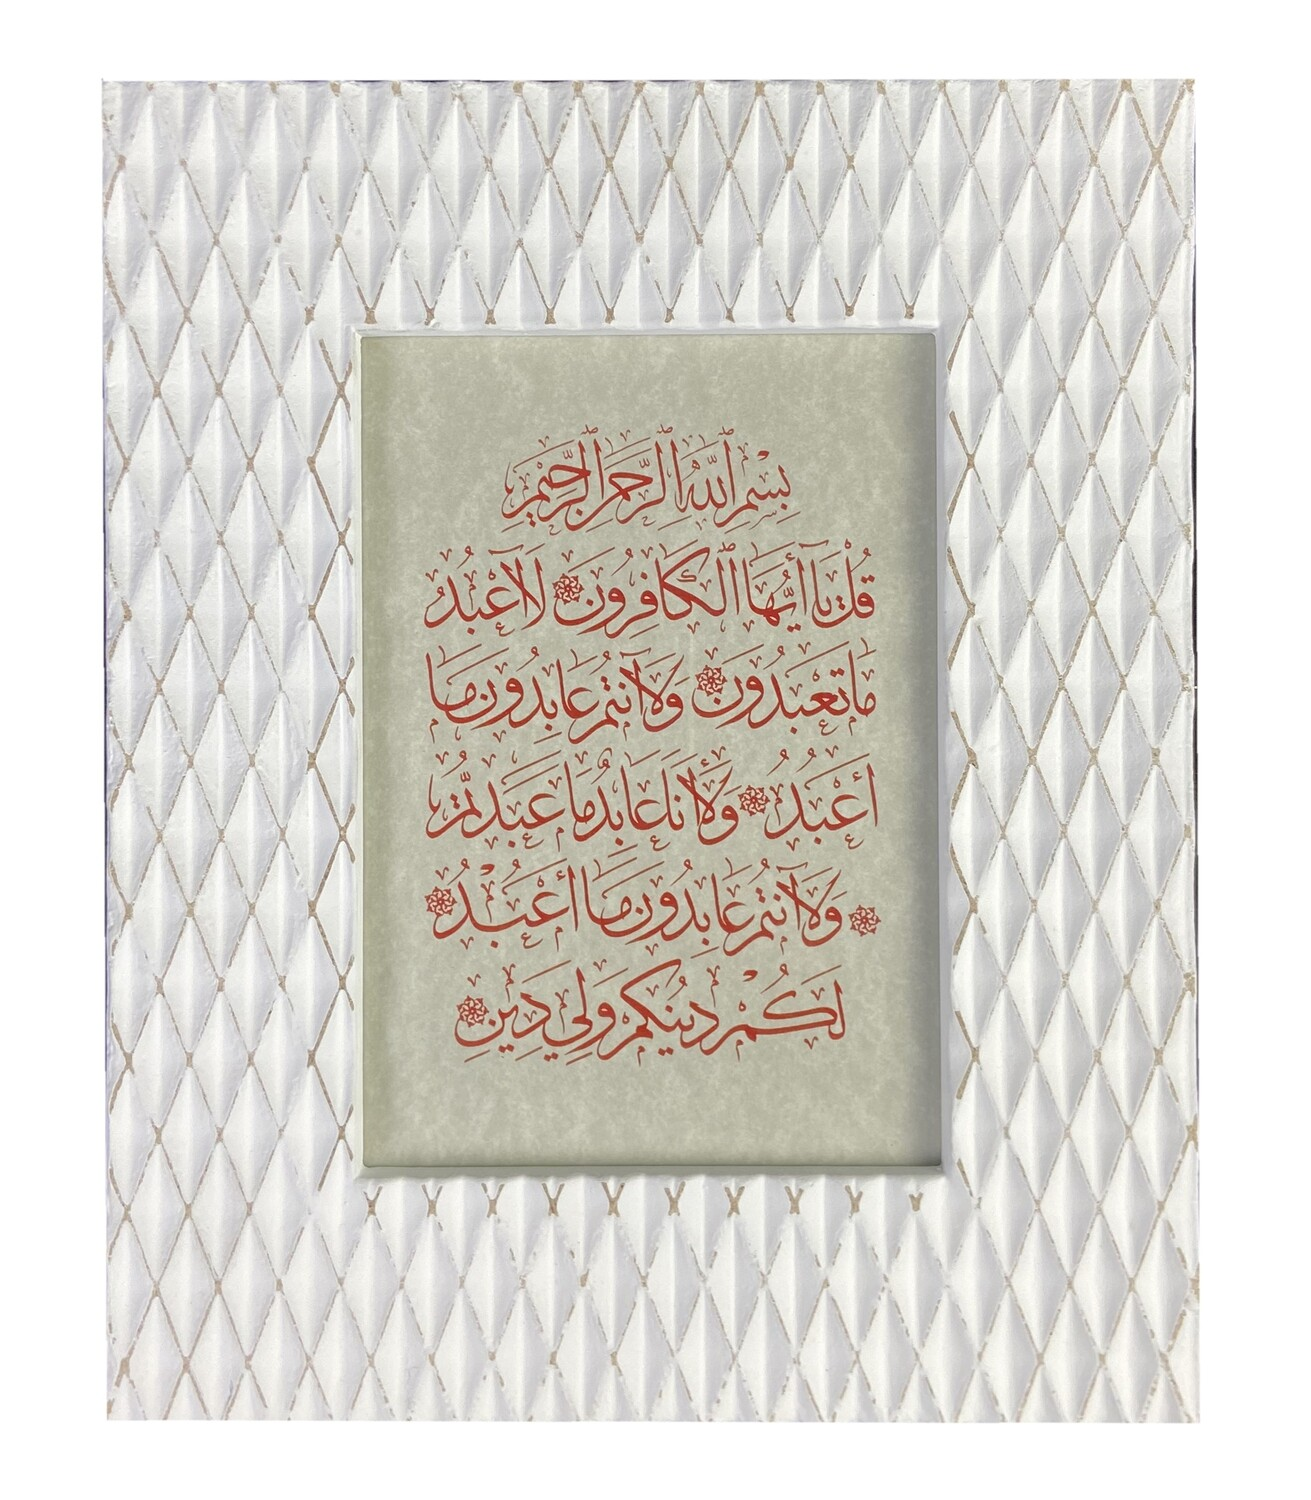 Surah Al-Kafirun on Grey Parchment in White Wood Frame